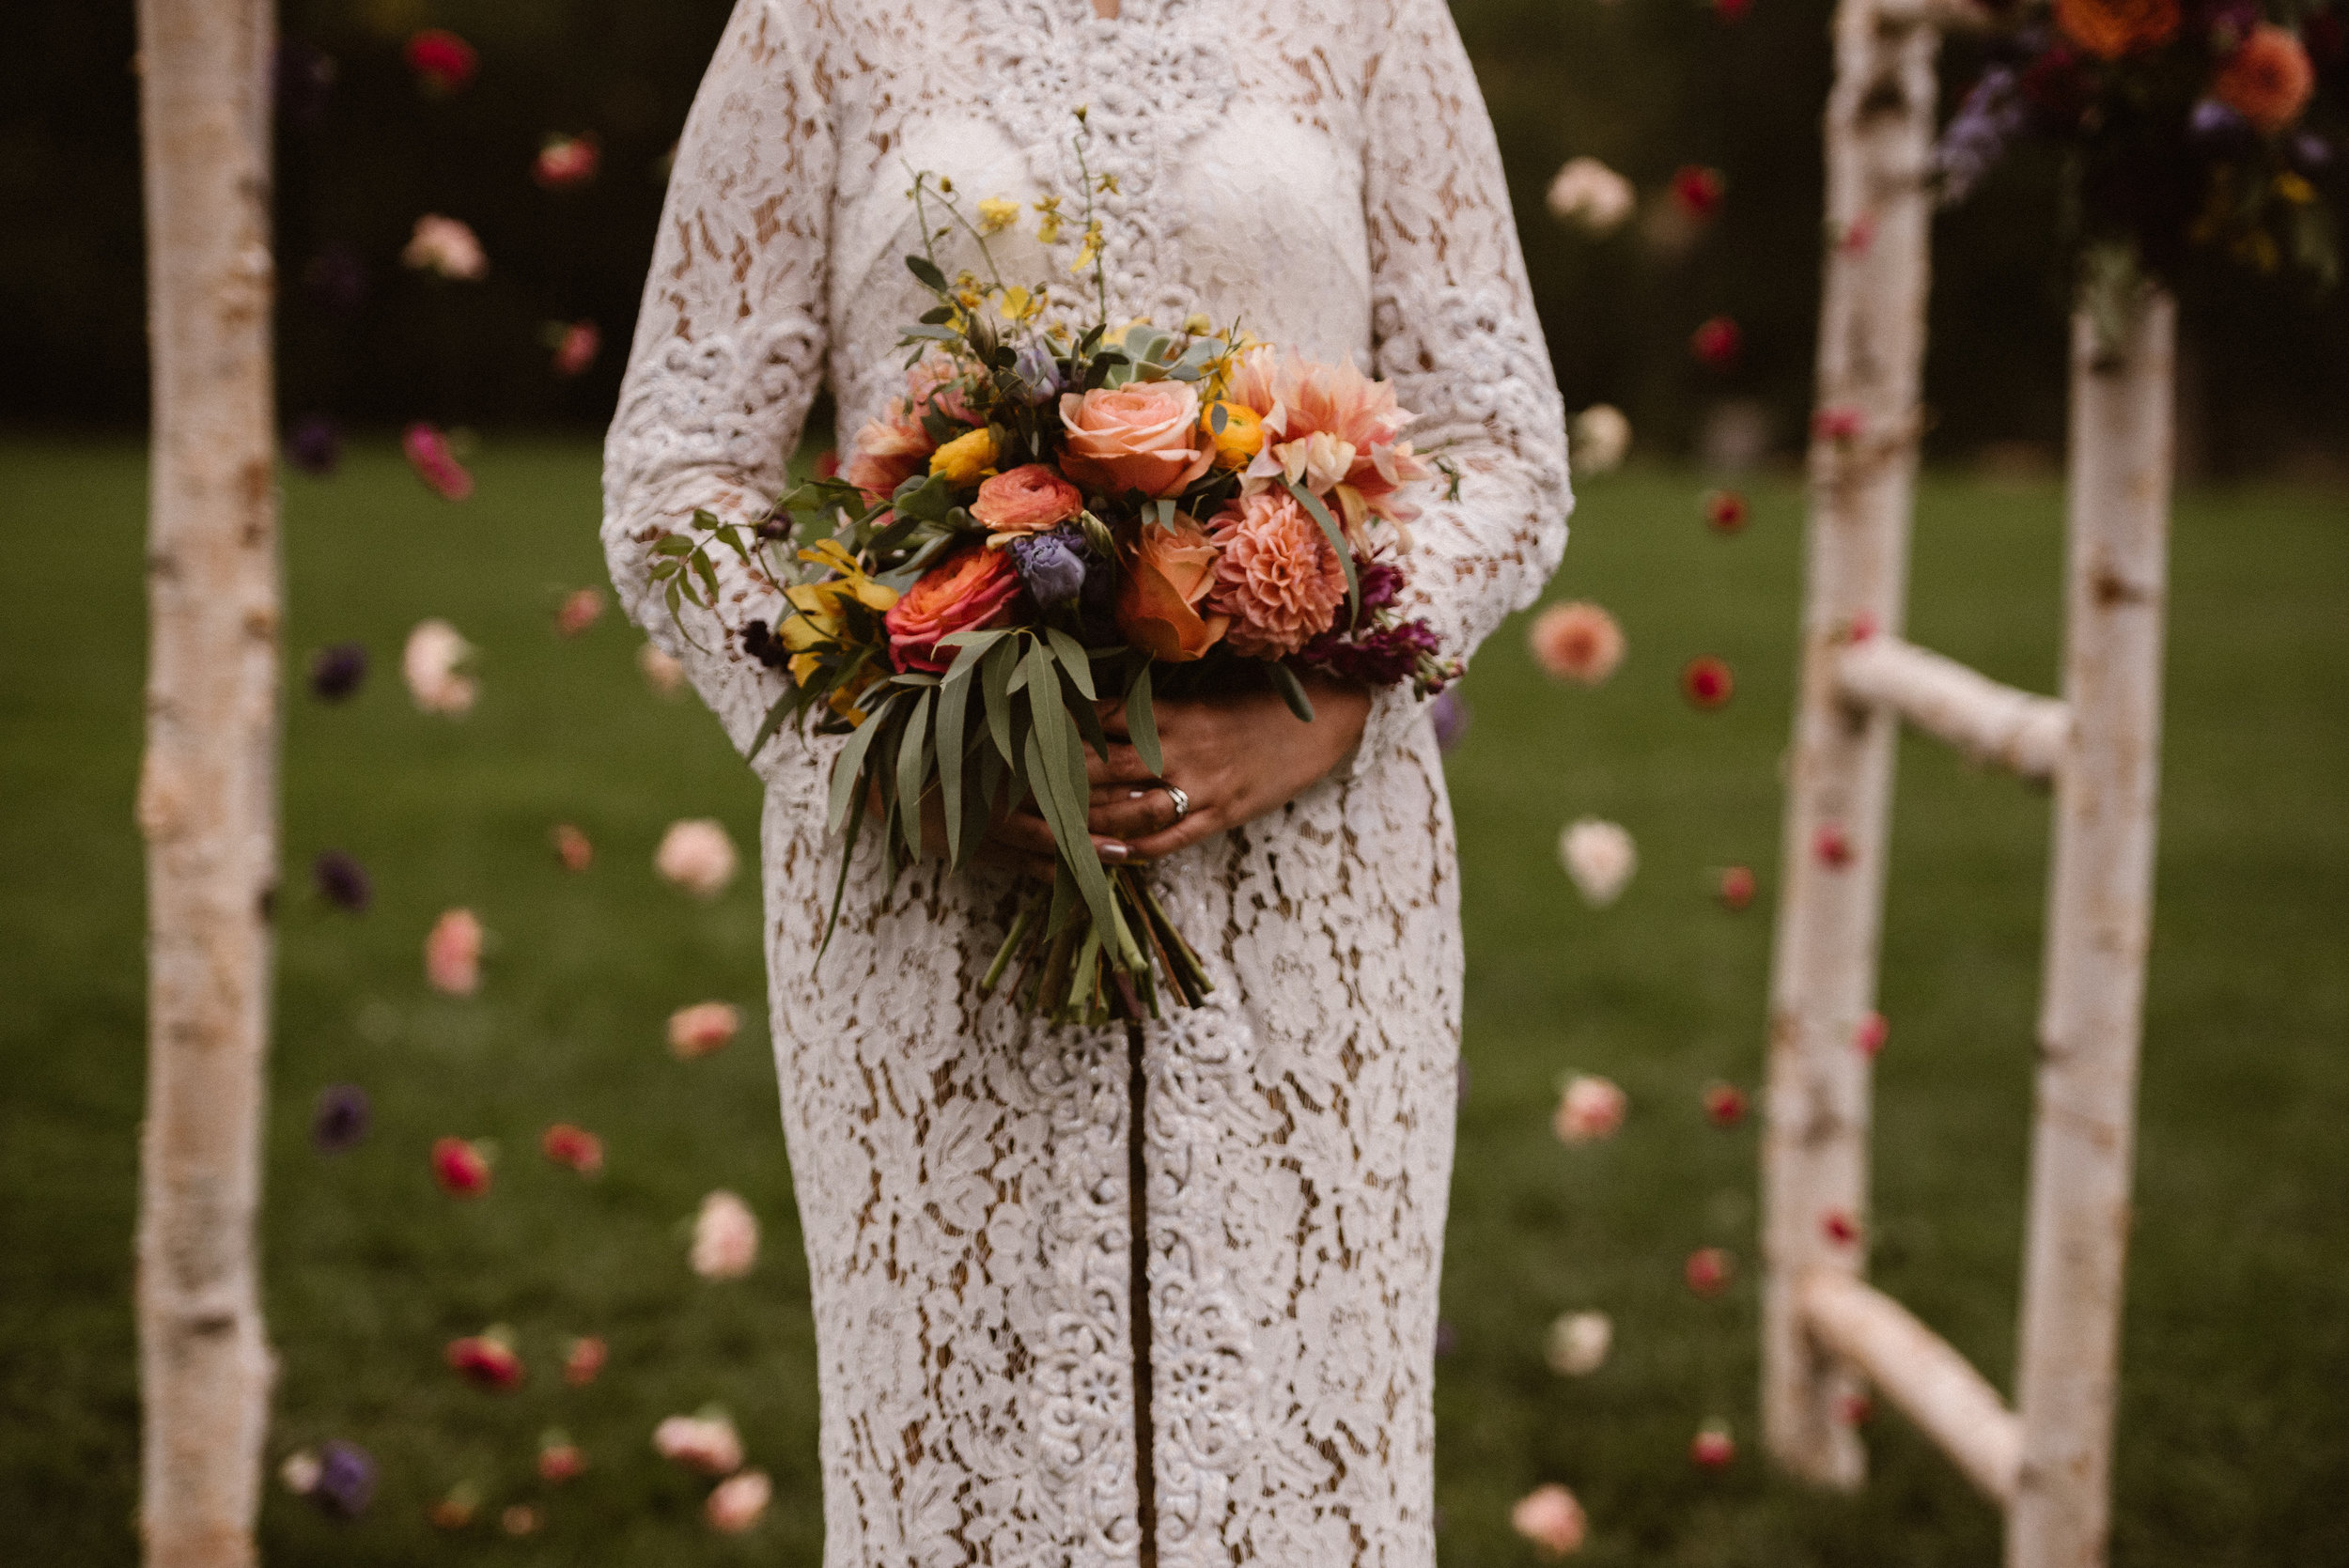 Bride and Ceremony Arch with Bridal Bouquet